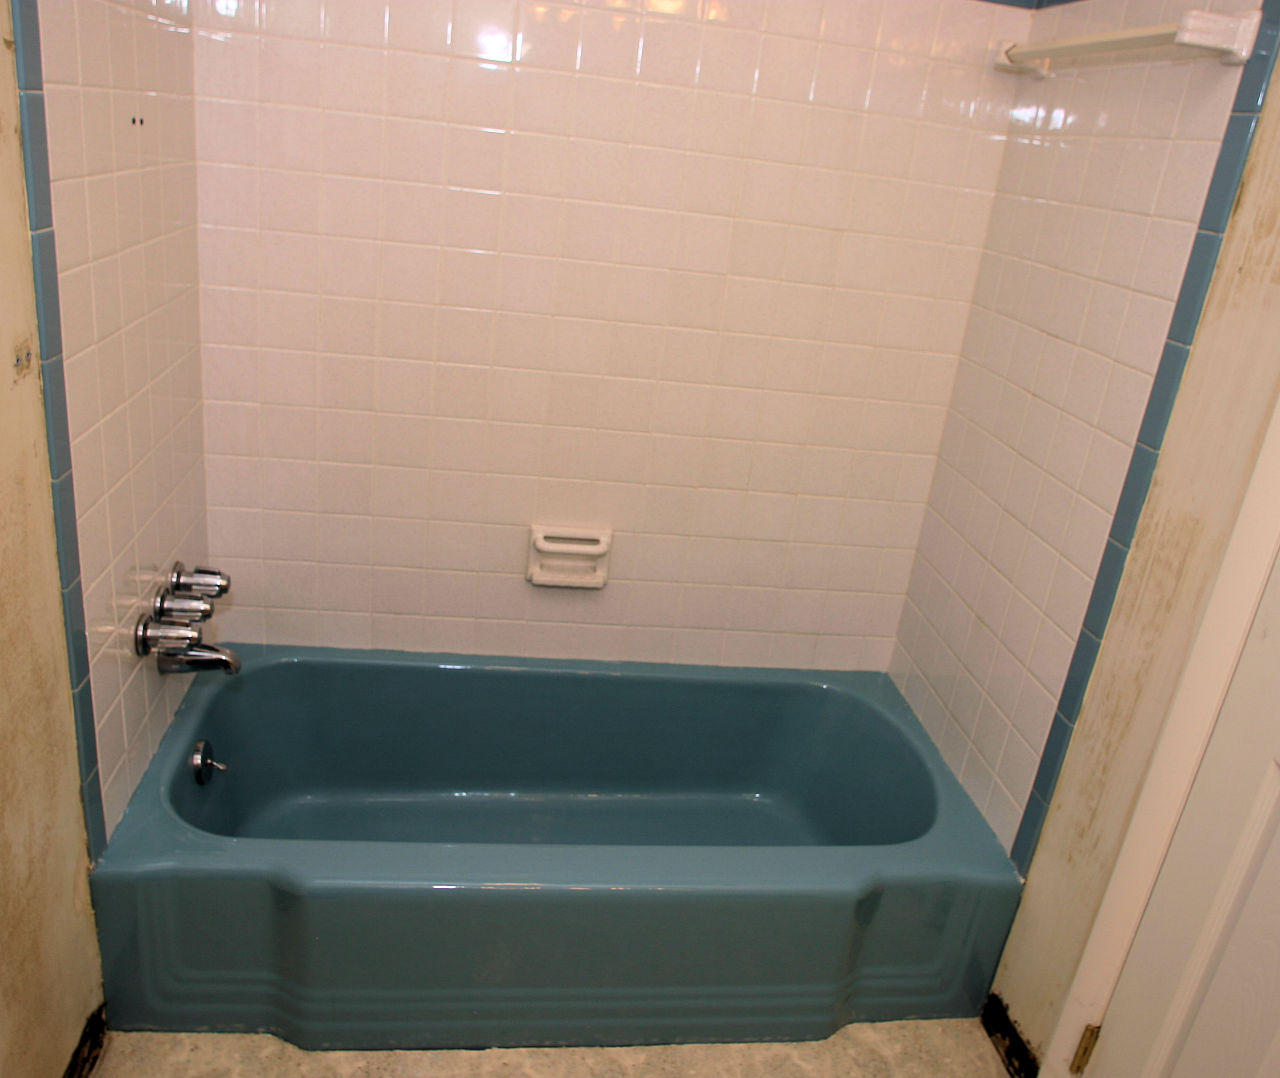 Design Blue Bathtub bathroom tile tub shower repairs pittsburgh east ohio low as old blue tub